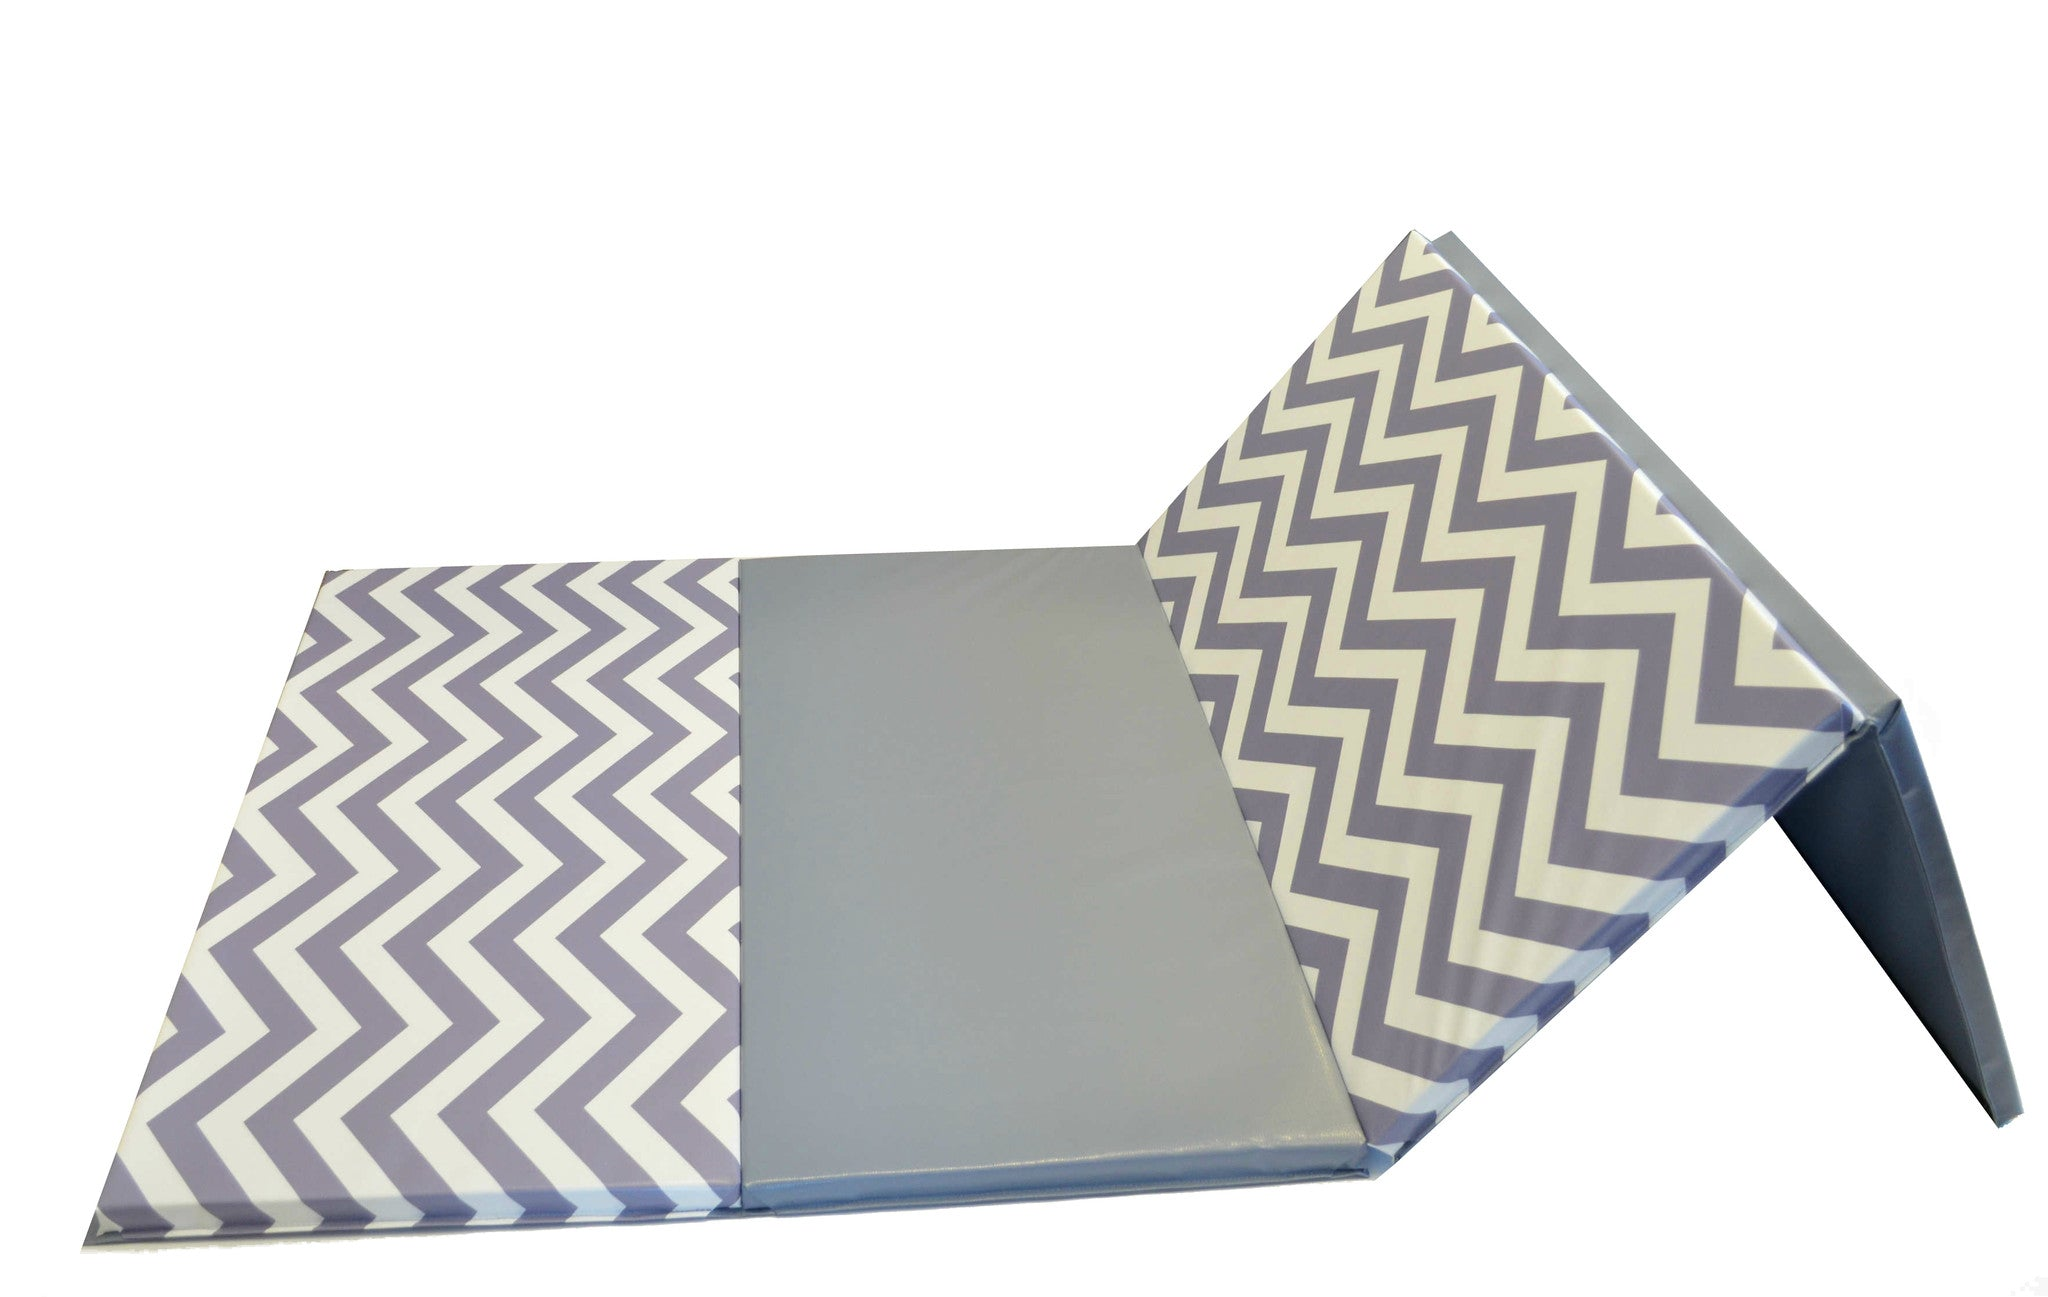 8' folding gymnastics mat chevron gray white